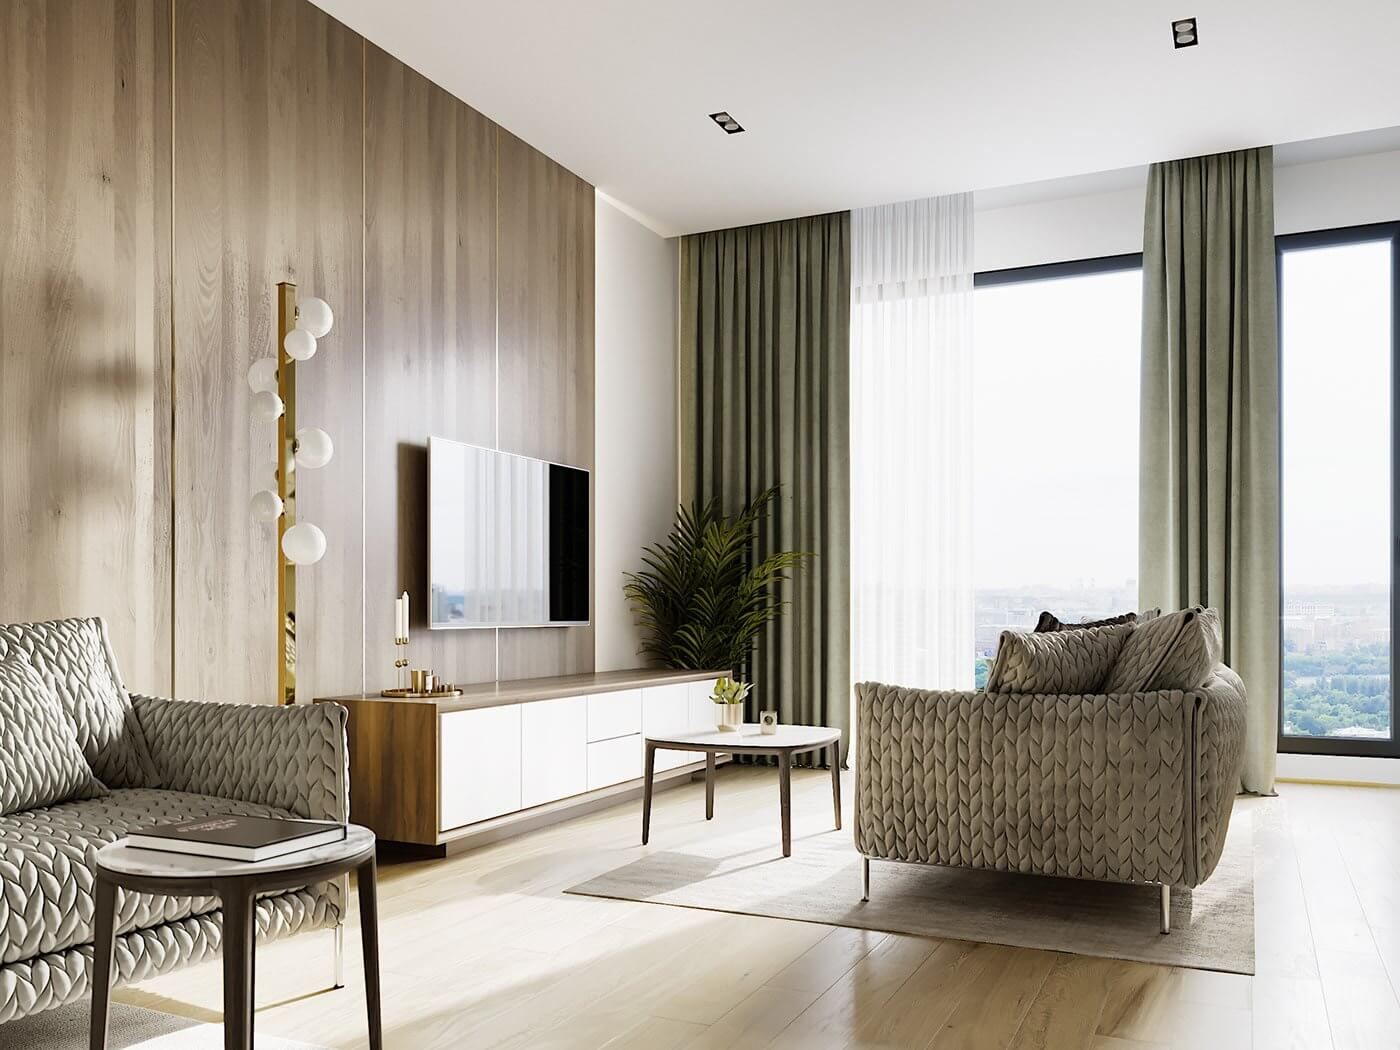 Green gold Apartment - cgi visualization